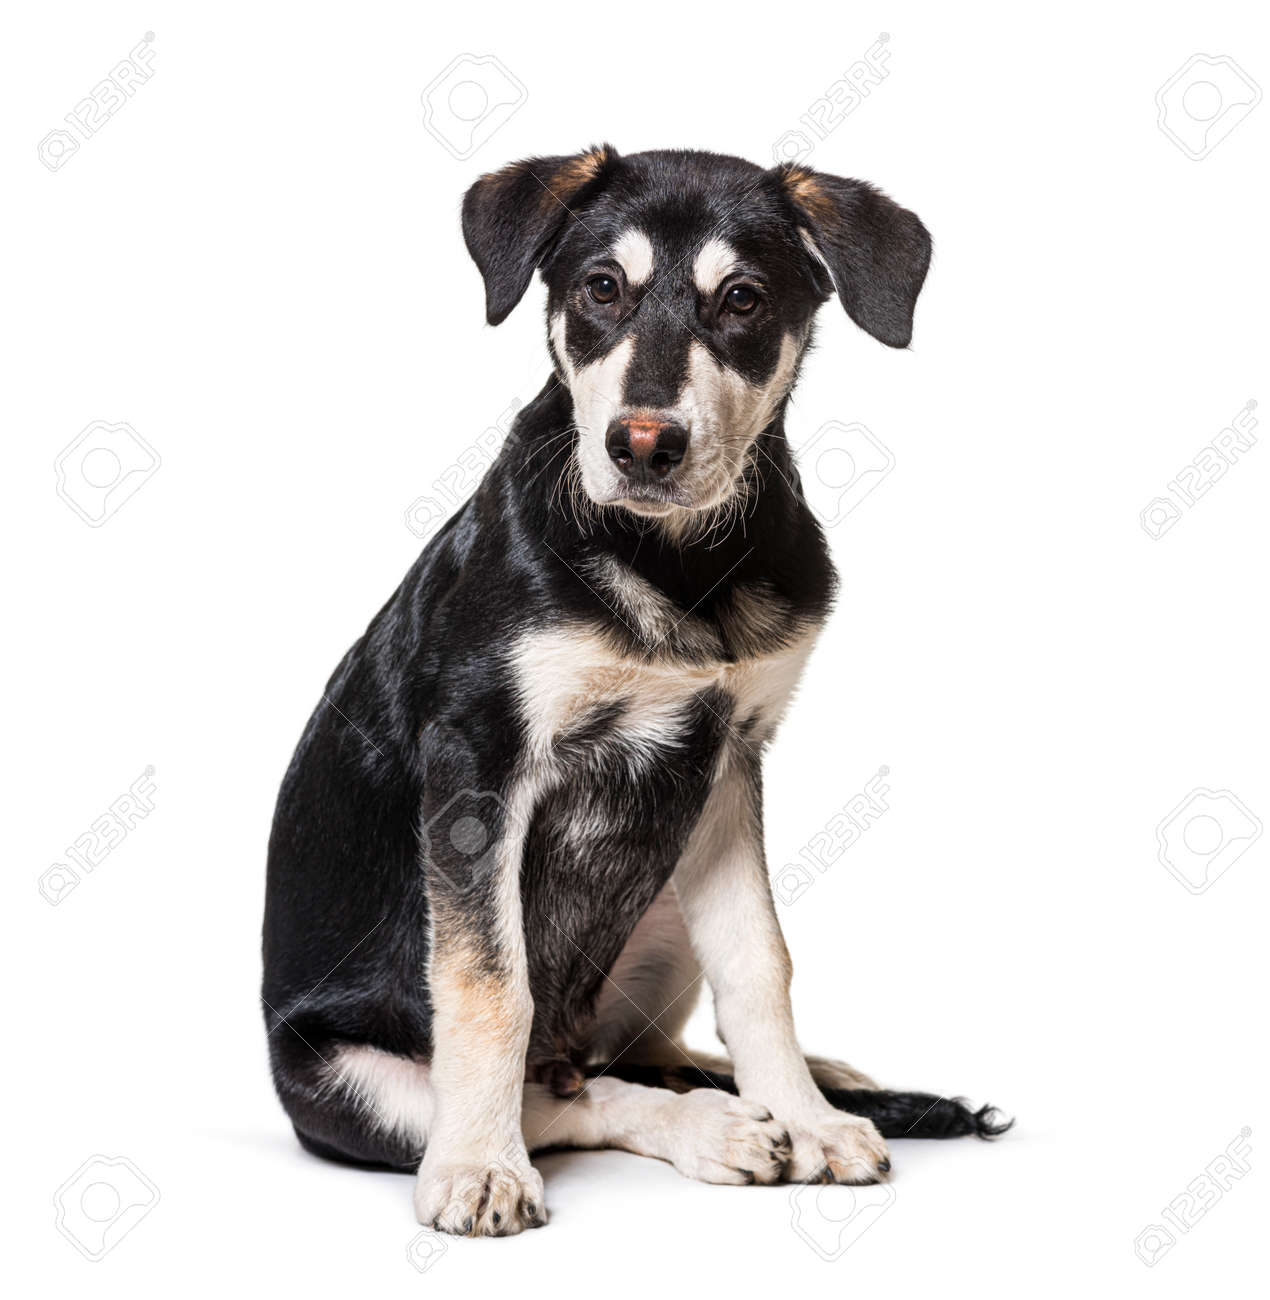 Black and white Crossbreed dog sitting, isolated - 171049294